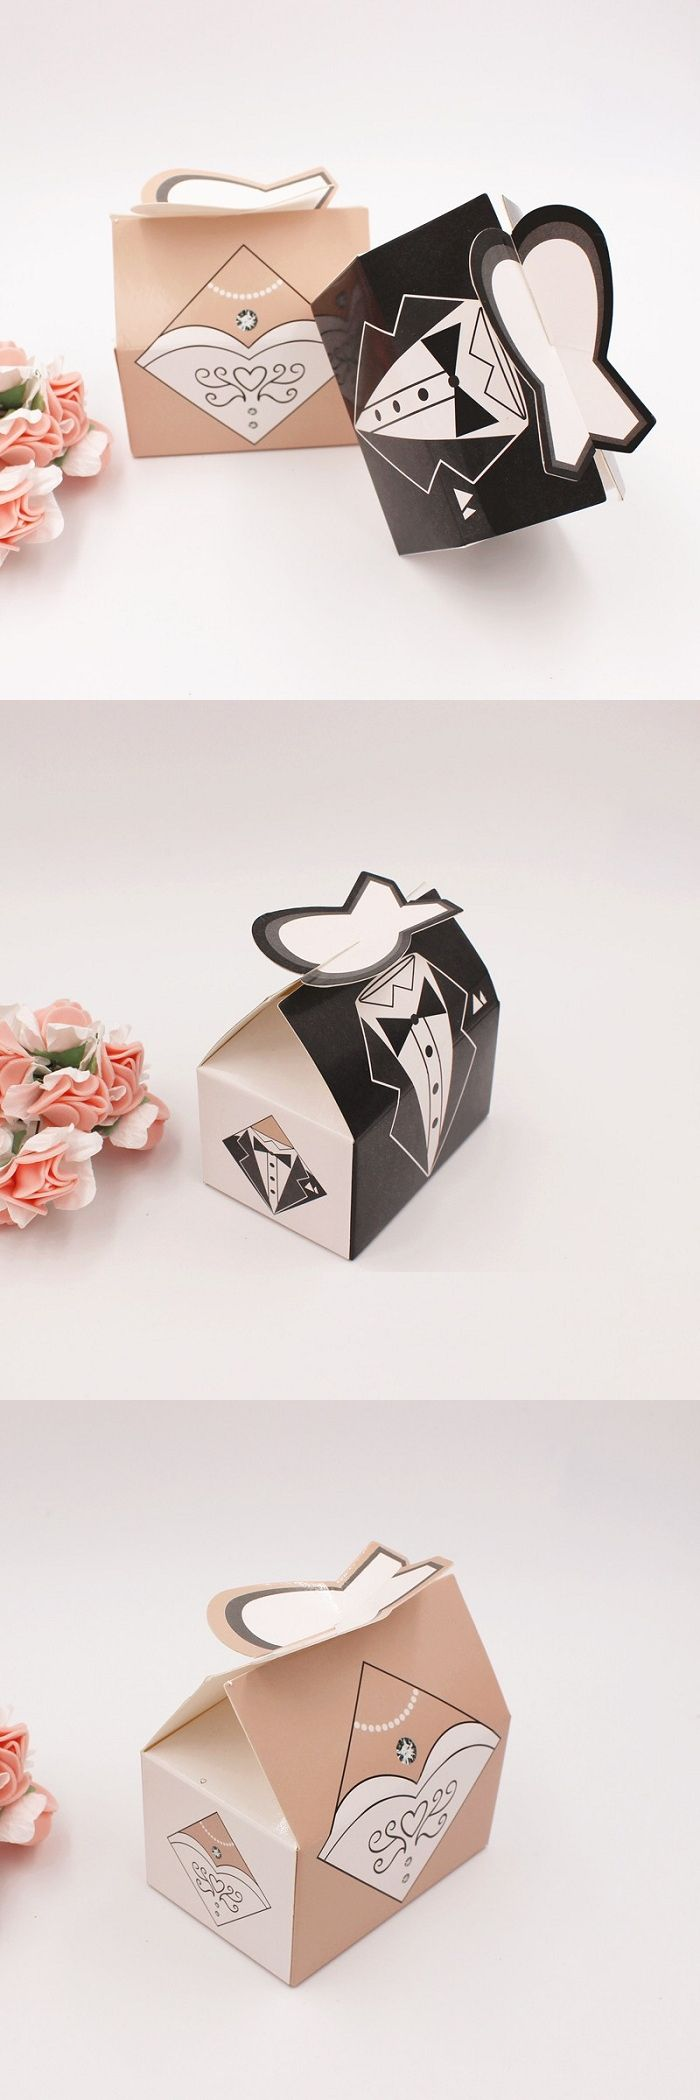 candy box bag chocolate paper gift package for Birthday Wedding ...